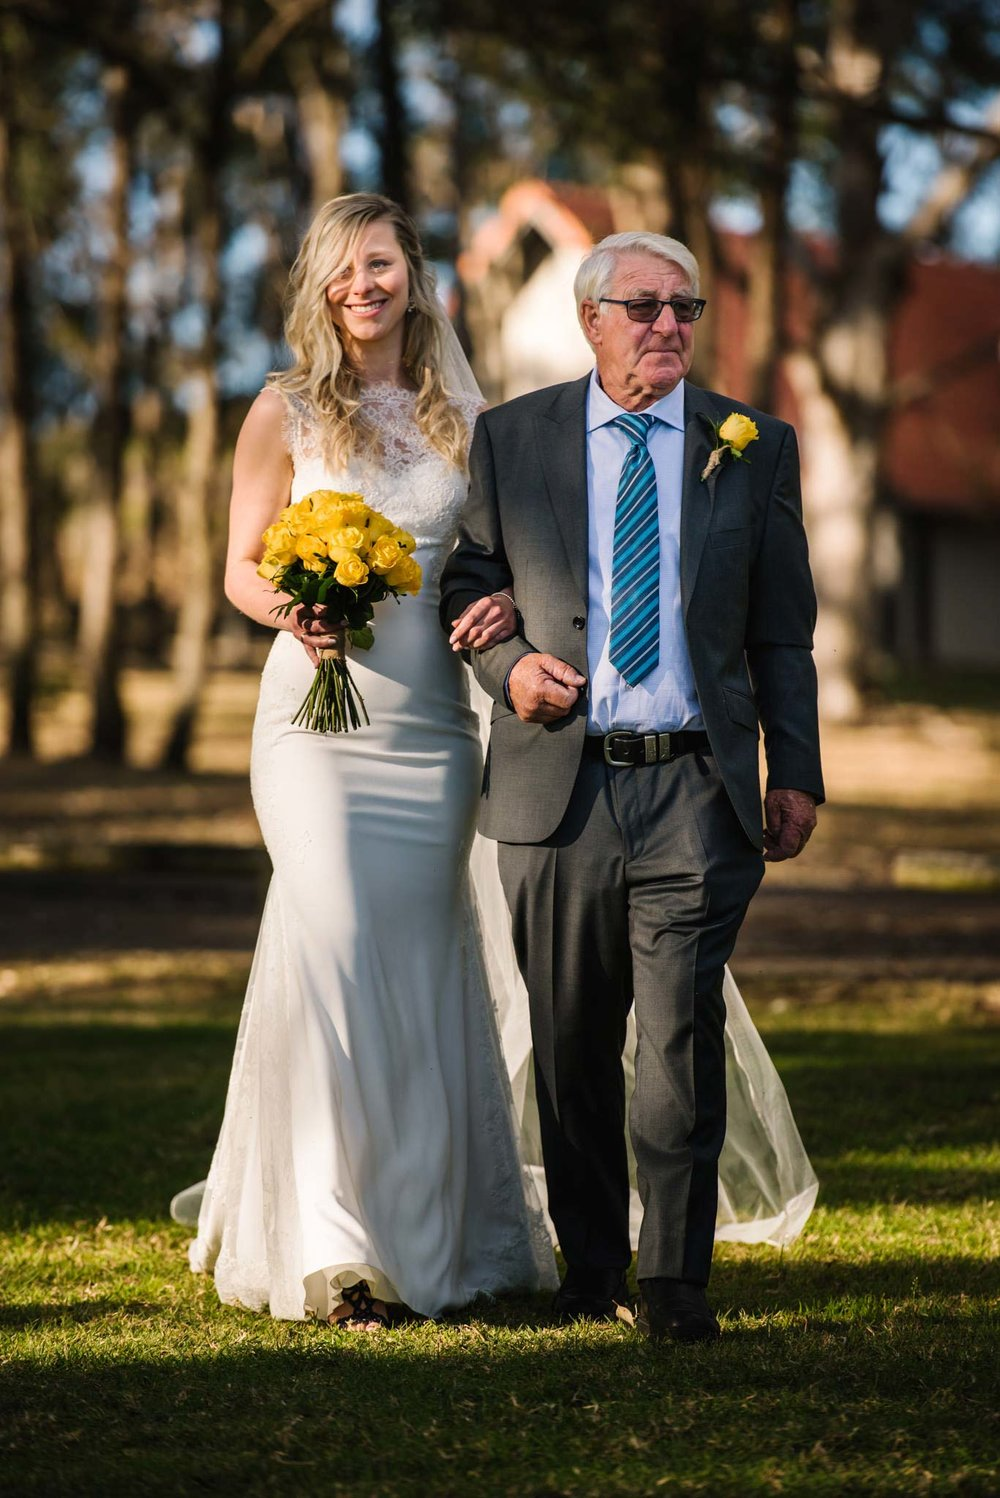 Bride and father walk down aisle during ceremony at Wandin Valley Estate